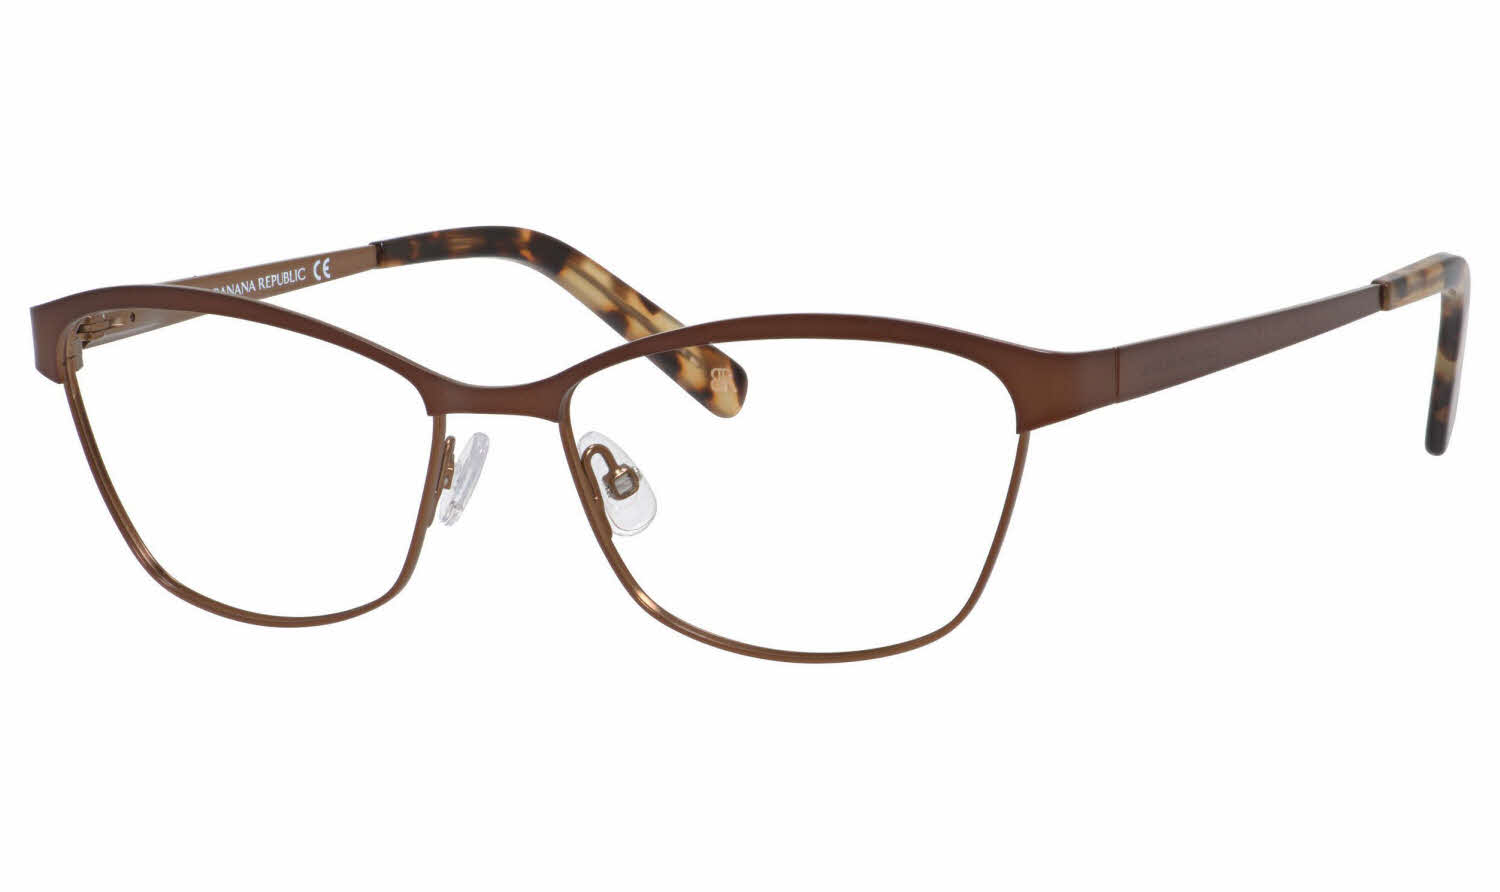 Banana Republic Chloe Eyeglasses | Free Shipping